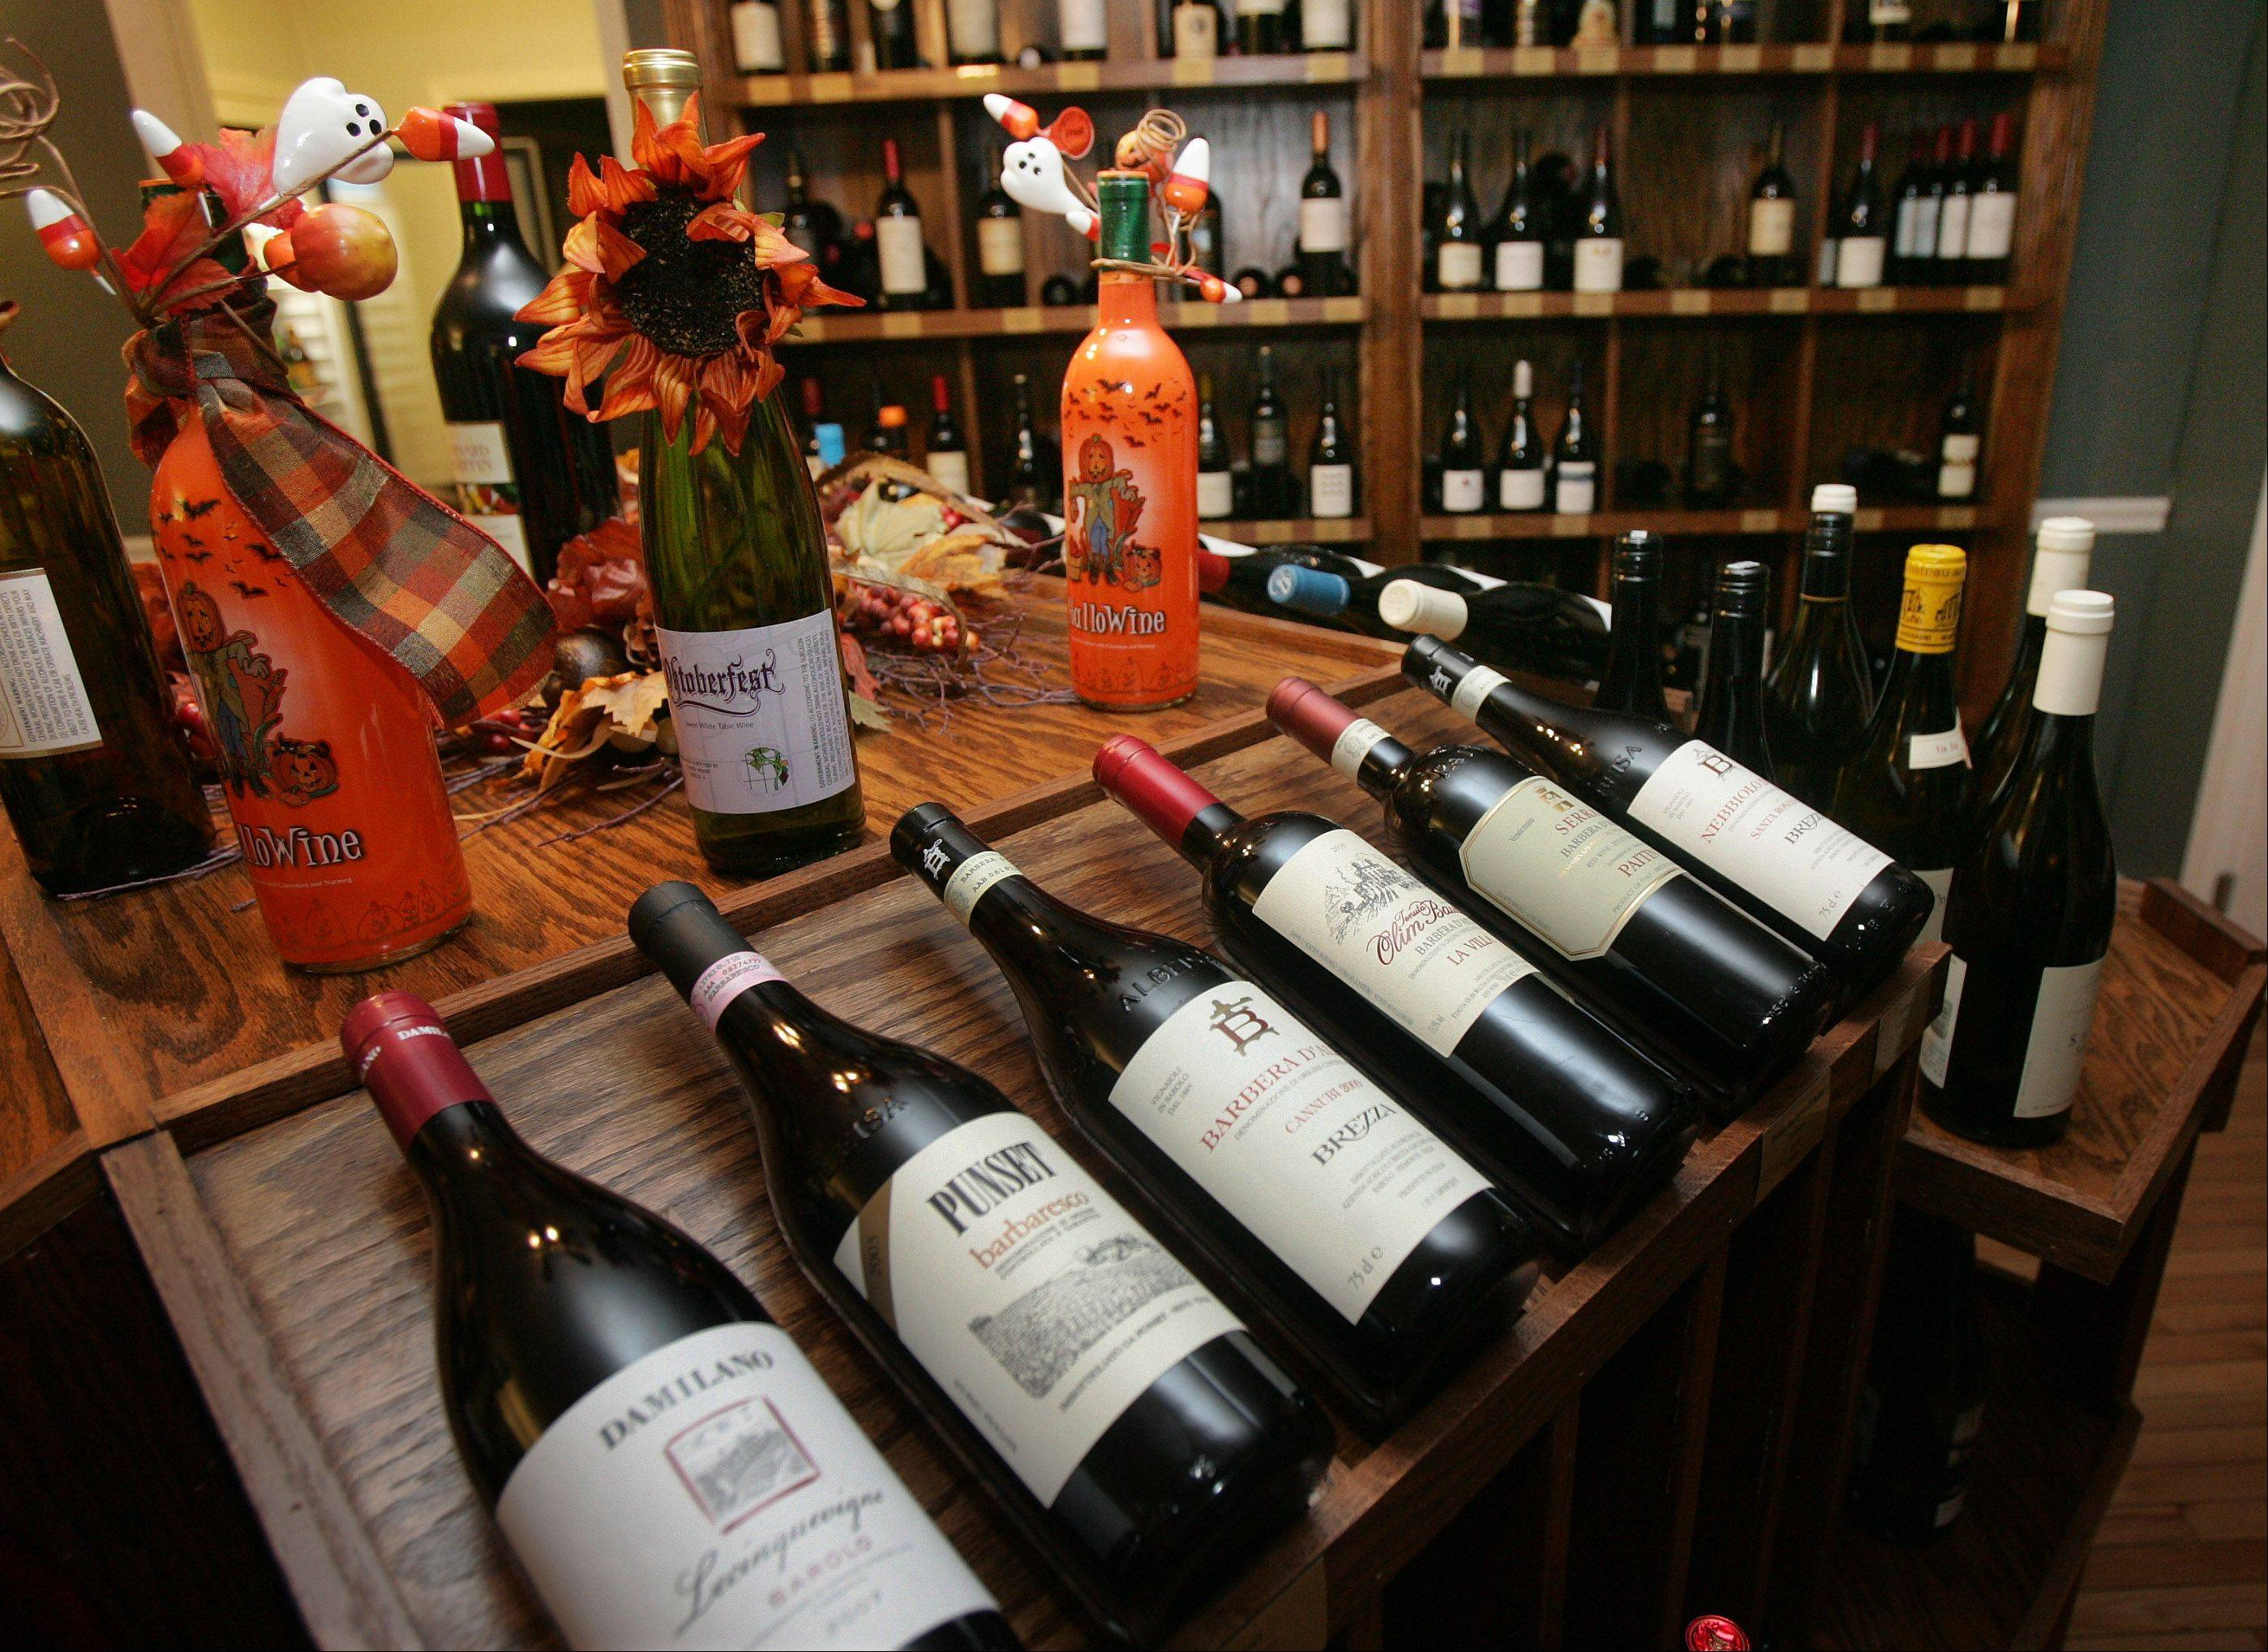 The wine room offers a large selection of bottles at WineSplash in Long Grove.